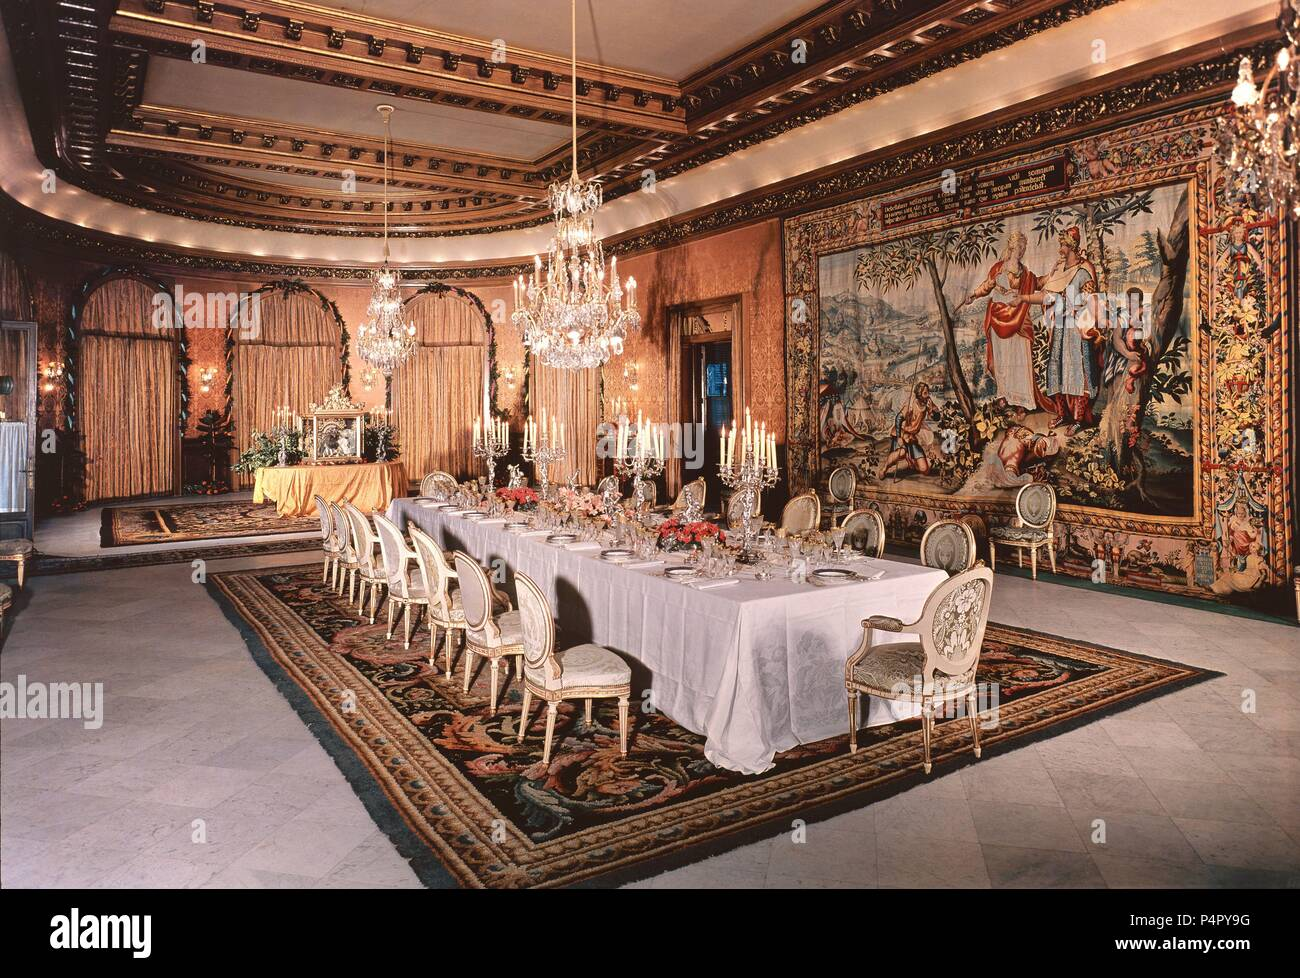 COMEDOR. Location: PALACIO DE PEDRALBES, BARCELONA, SPAIN Stock ...